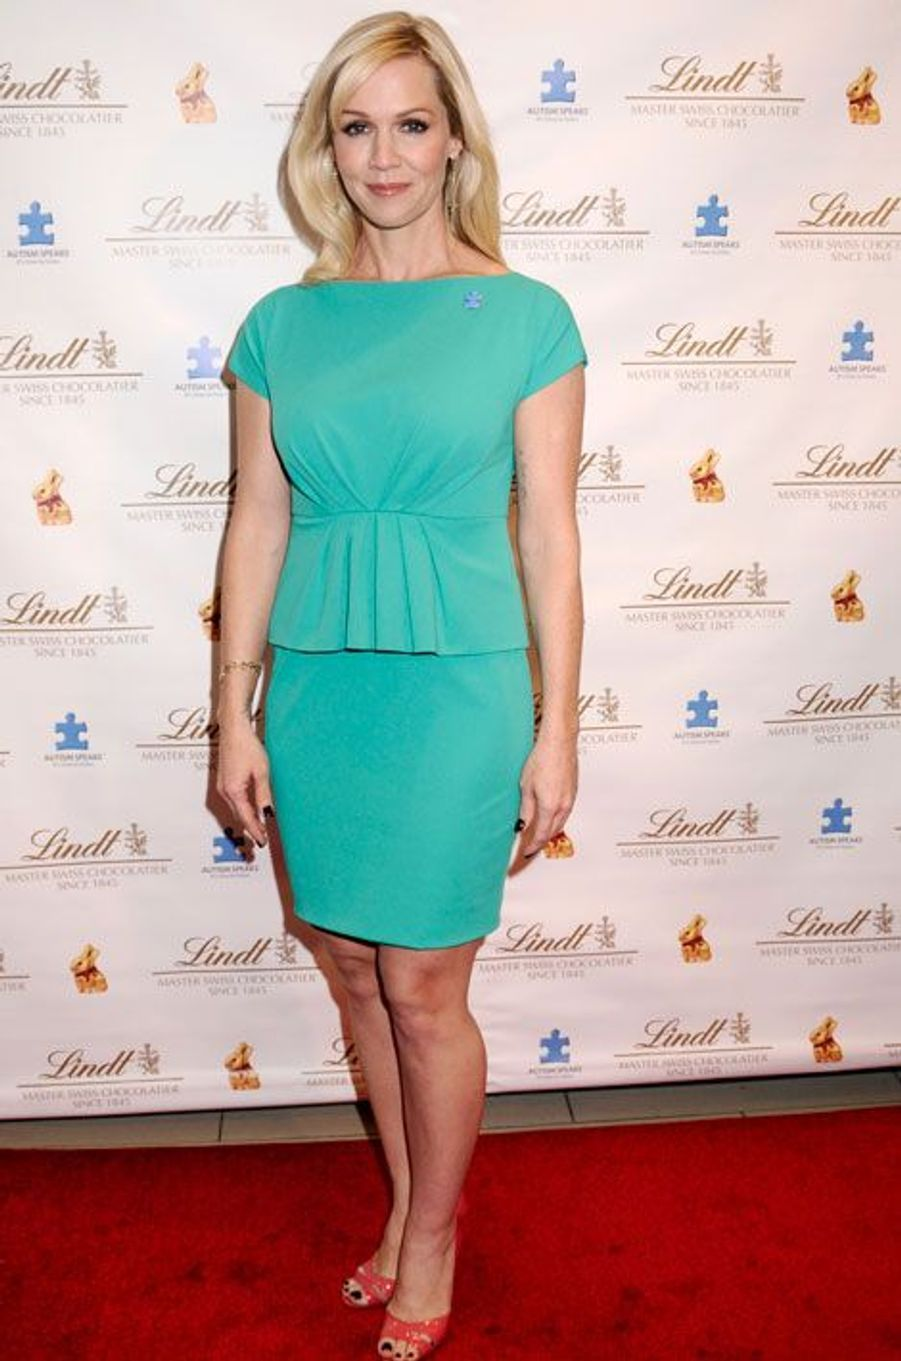 Kelly Taylor (Jennie Garth)